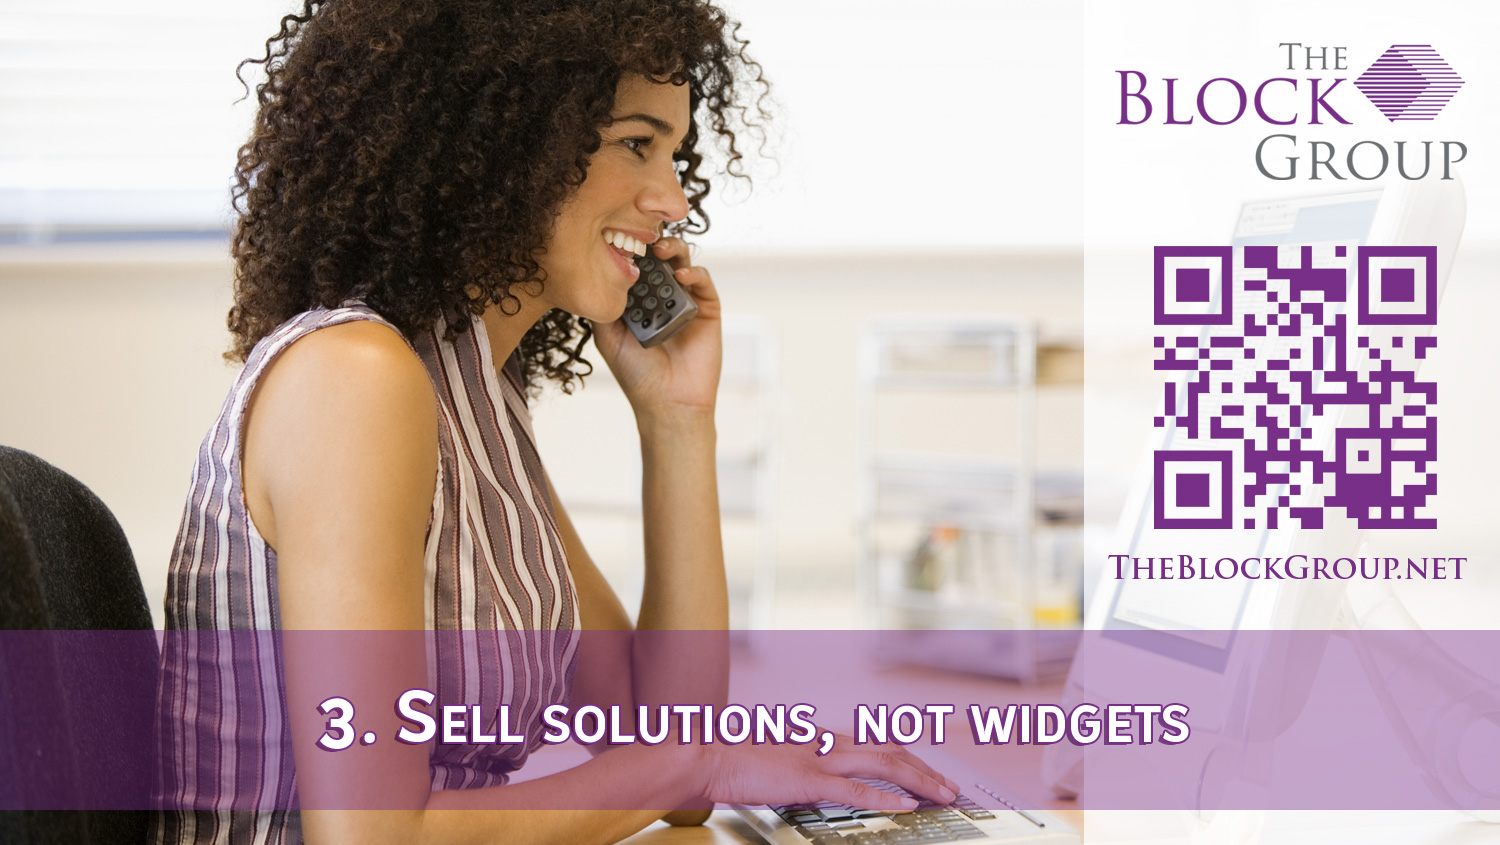 003.-Sell solutions not widgets